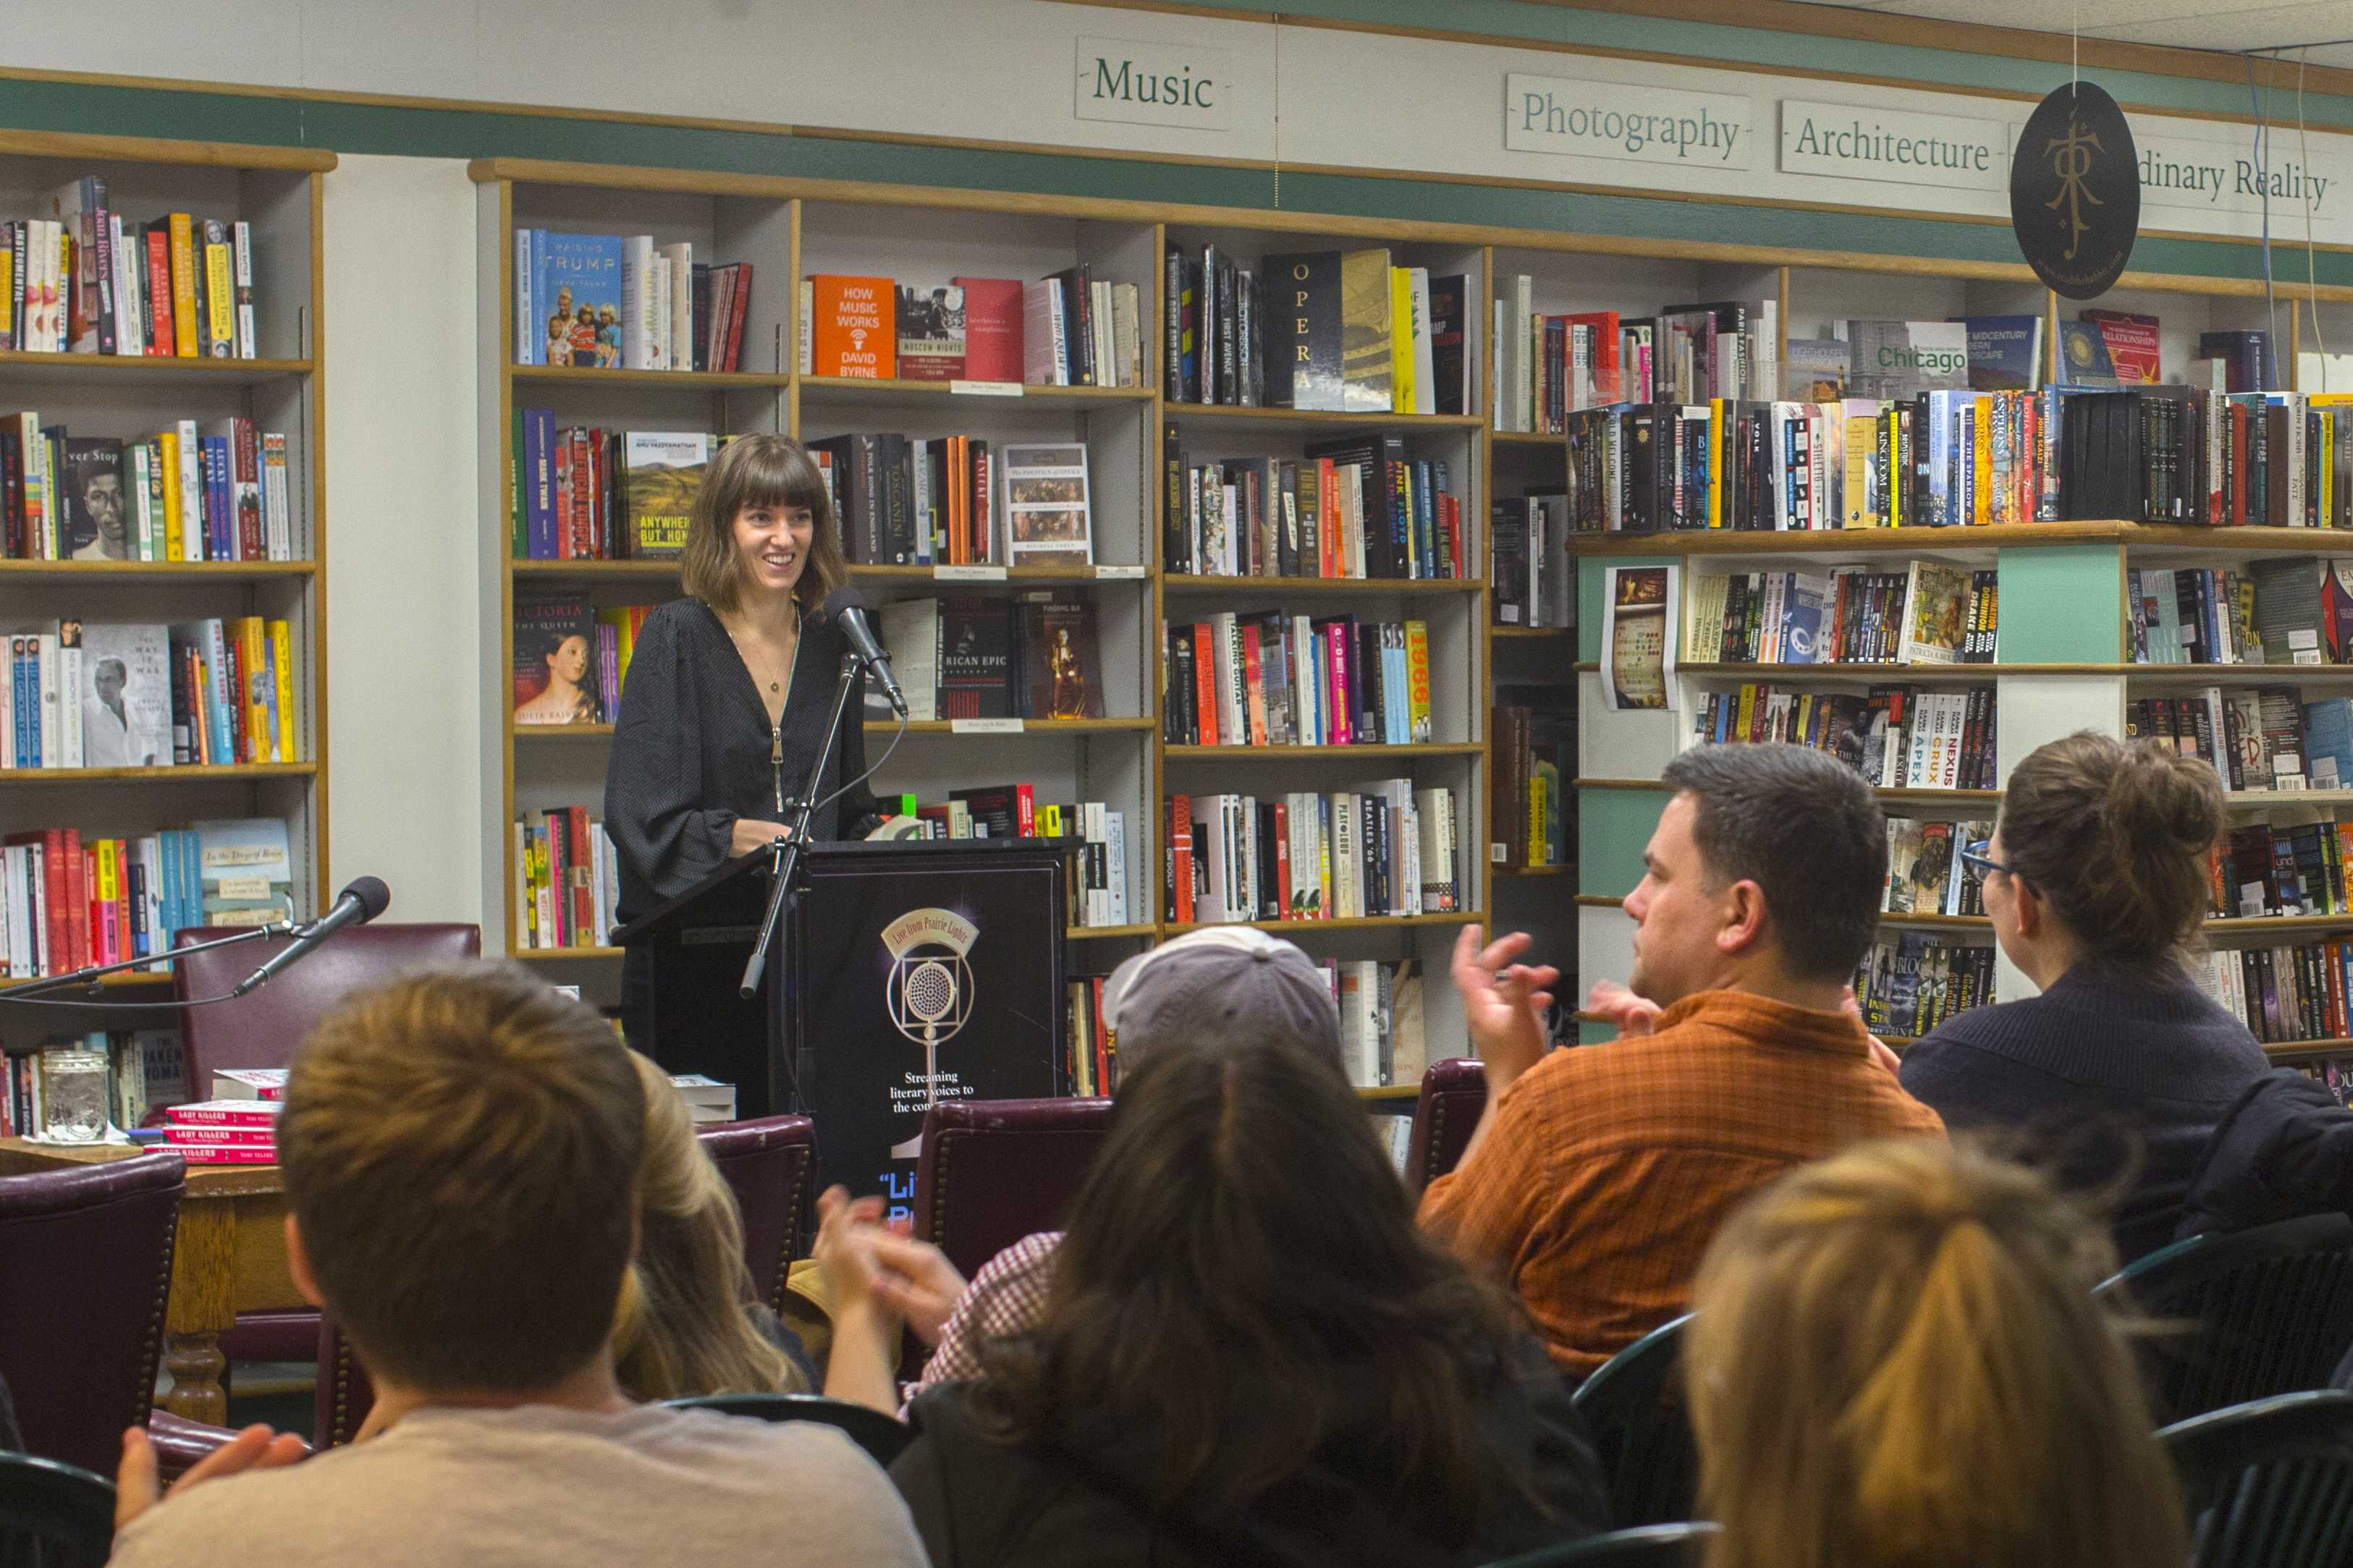 Author Tori Telfer speaks at Prarie Lights Bookstore on Tuesday, Oct. 31, 2017. Telfer is the author of Lady Killers. (Lily Smith/The Daily Iowan)